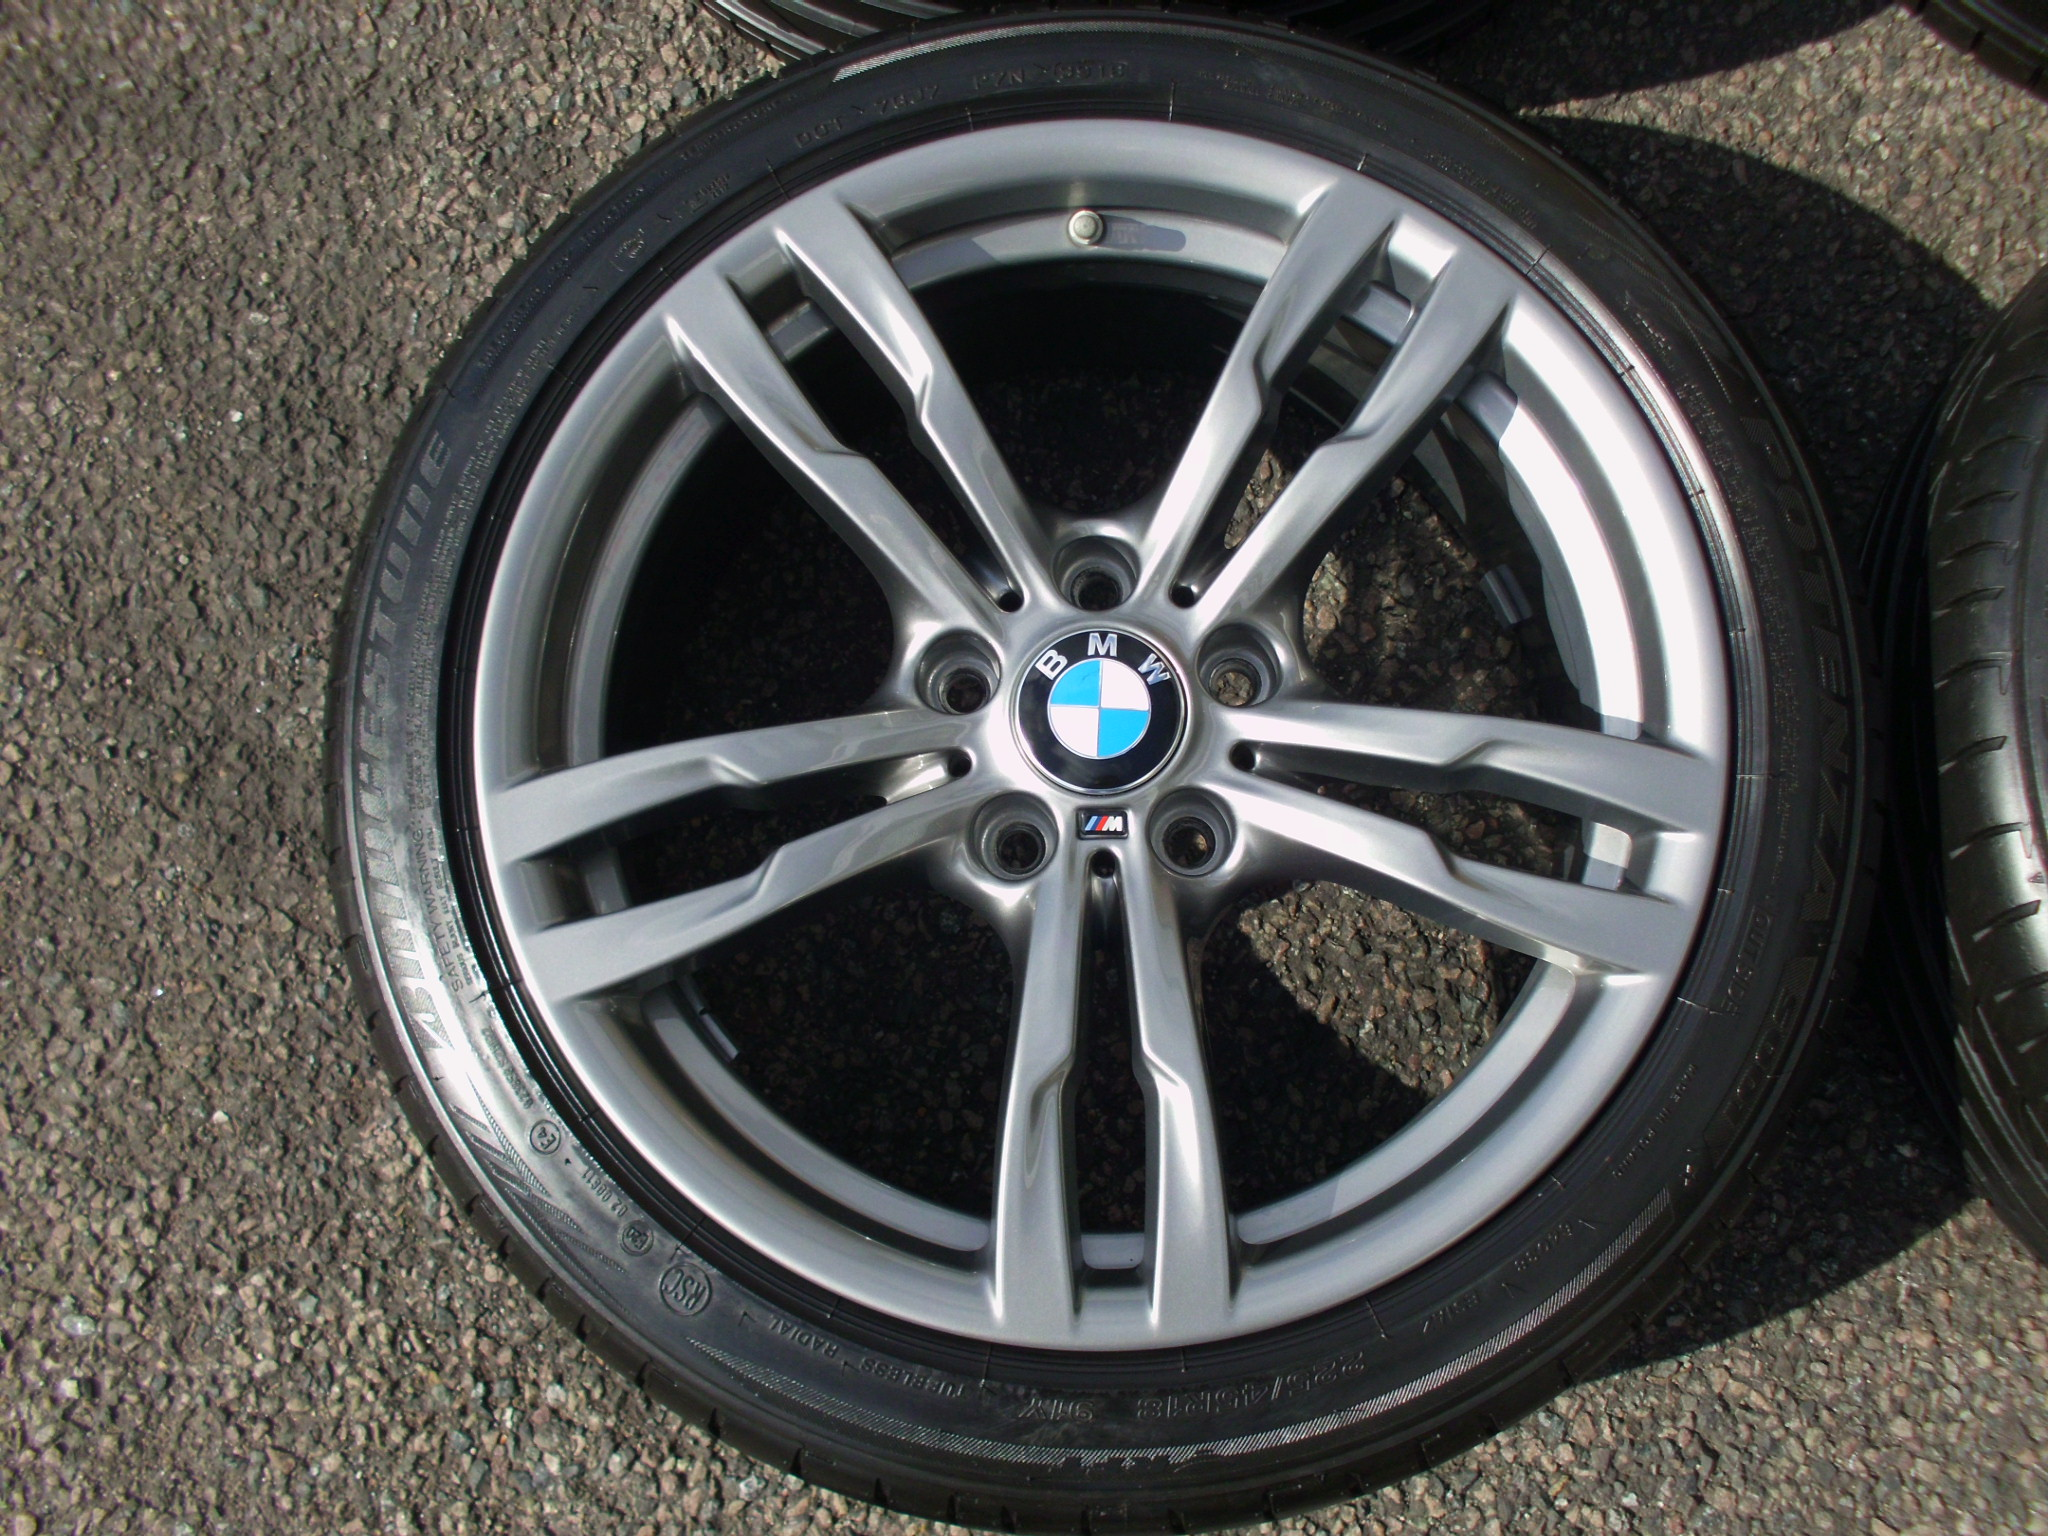 "USED 18"" GENUINE STYLE 441 M SPORT ALLOYS,AS NEW,FERRIC GREY,WIDER REARS, INC VG BRIDGESTONE RUNFLAT TYRES AND TPMS"